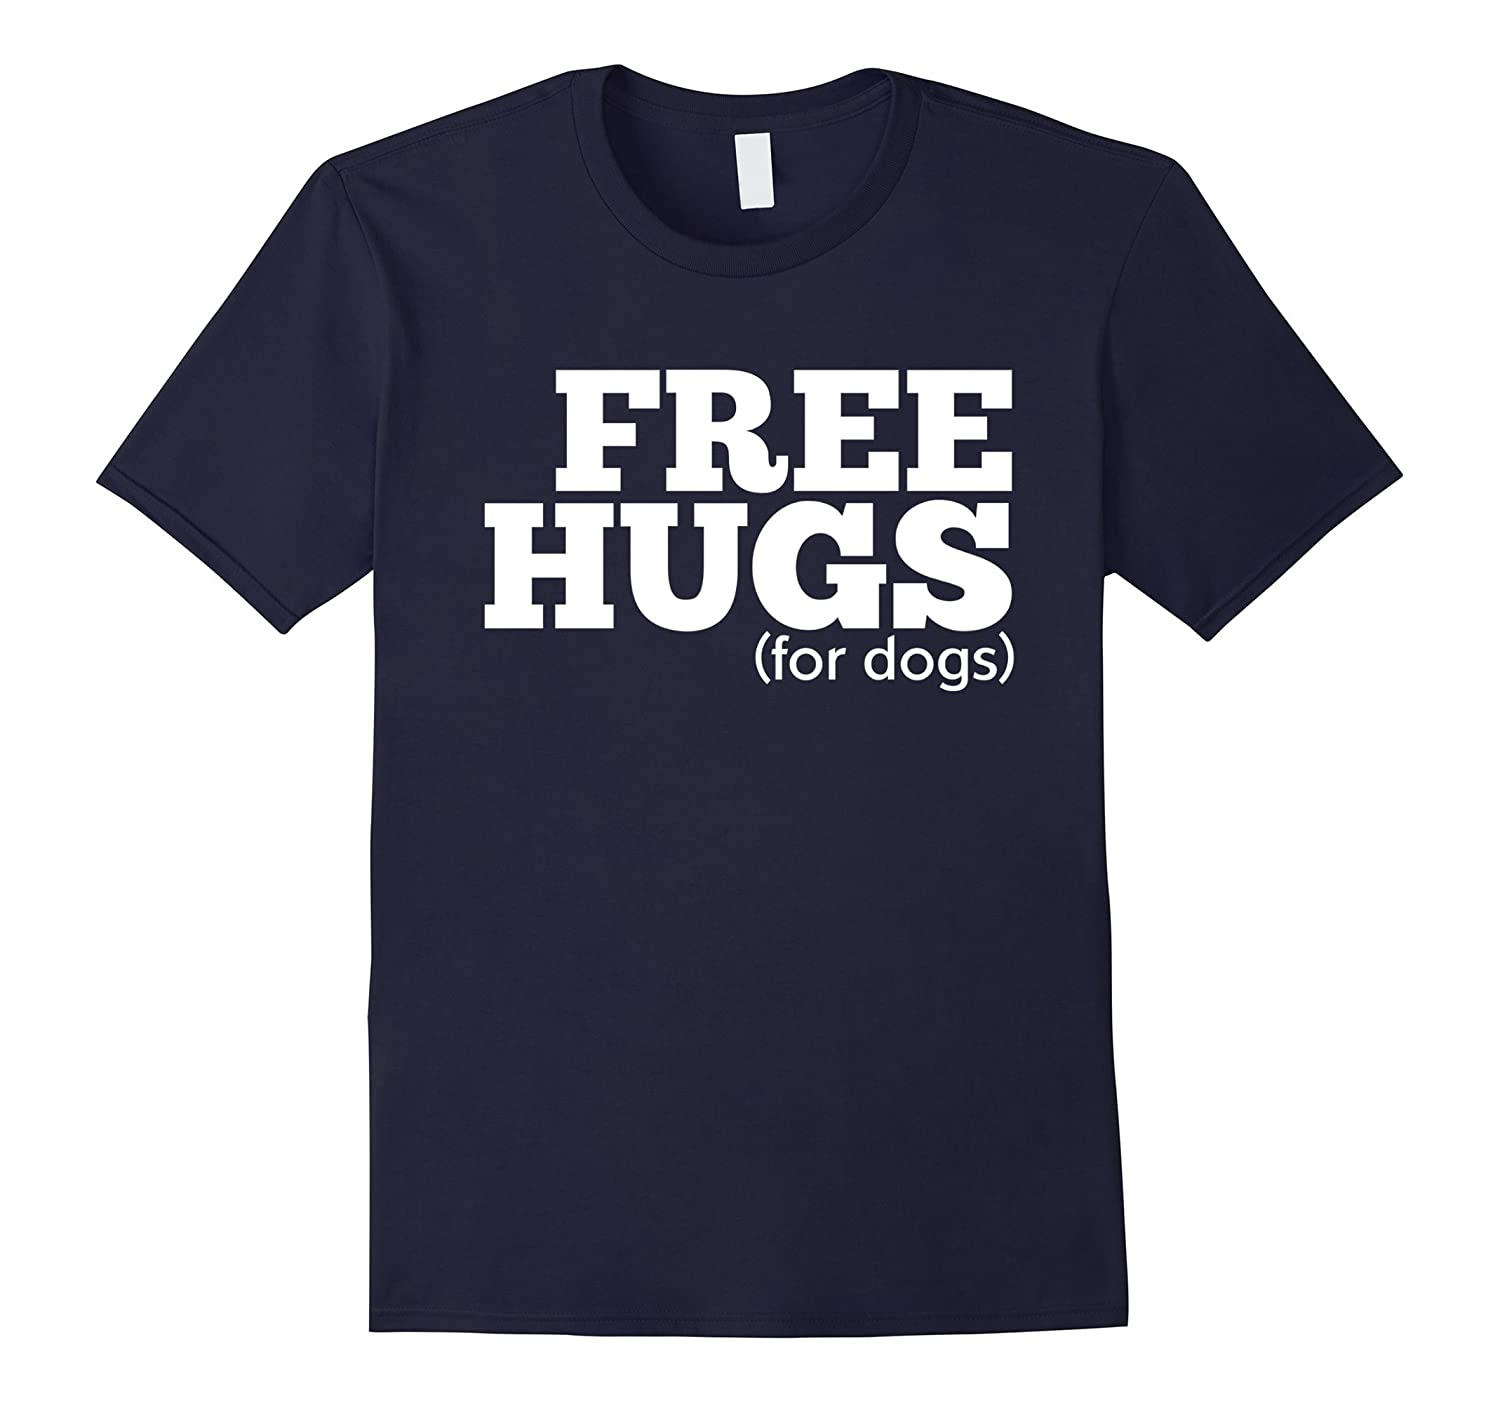 Aw Cute Dog Shirts Free Hugs For Dogs Funny T-shirt Gift-BN